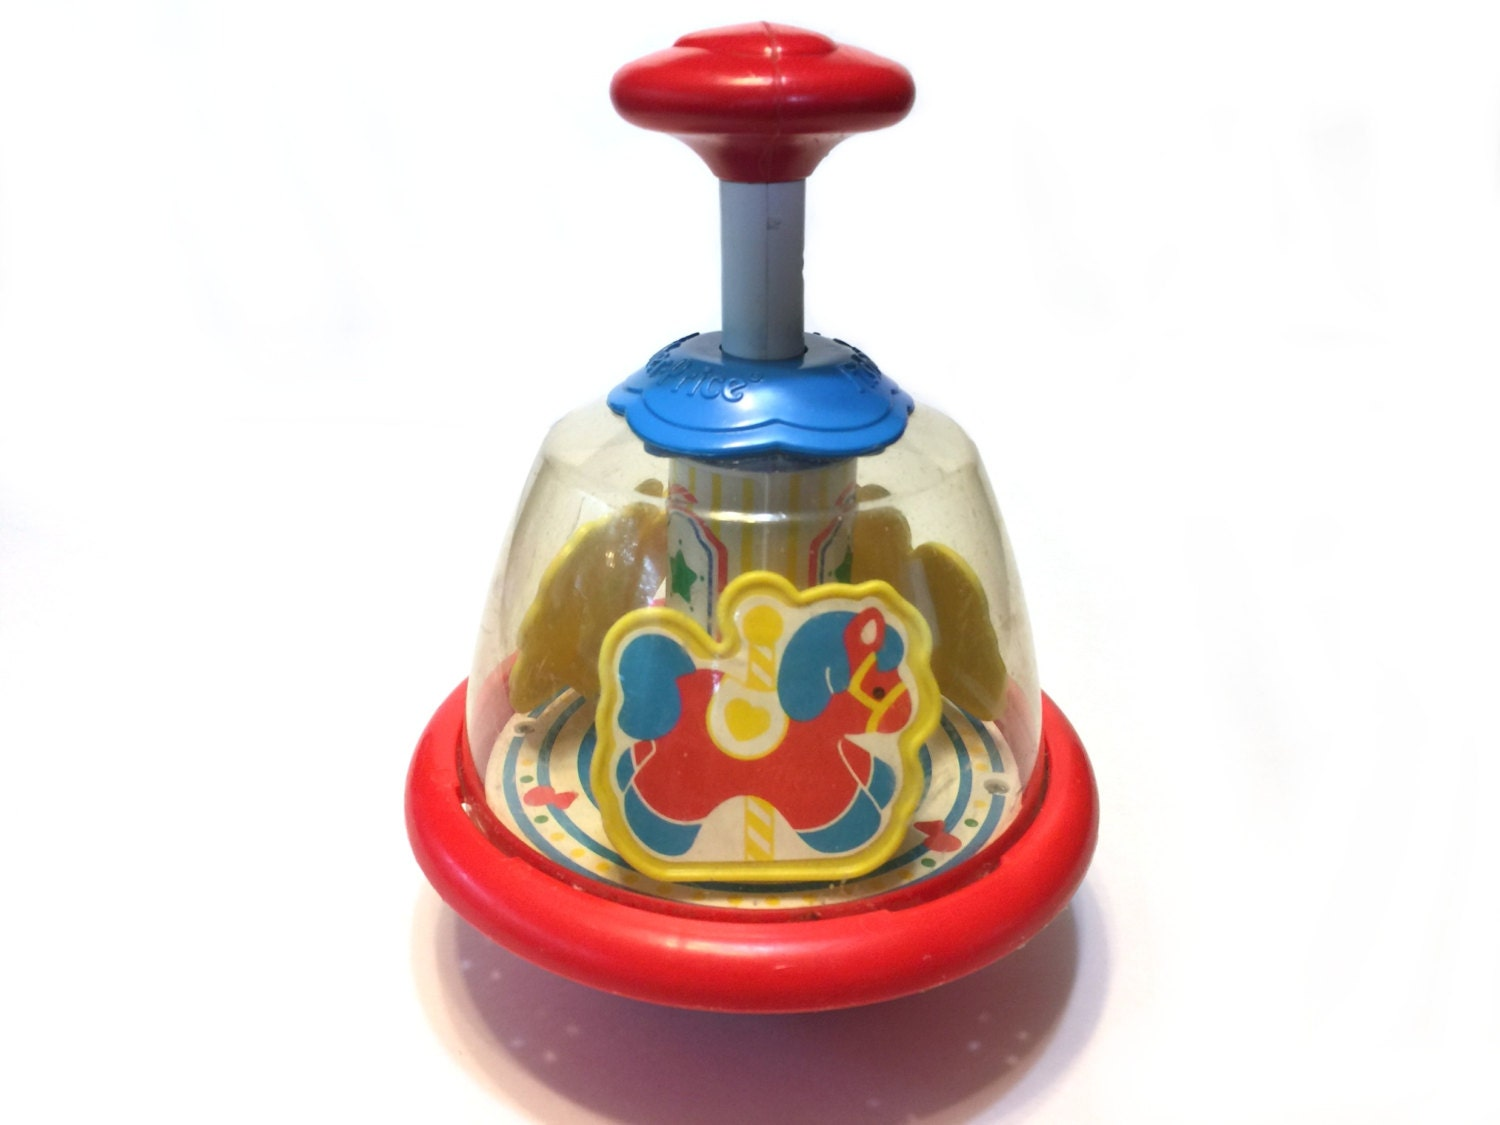 Toy Spinning Top : Vintage fisher price toy s red spinning top